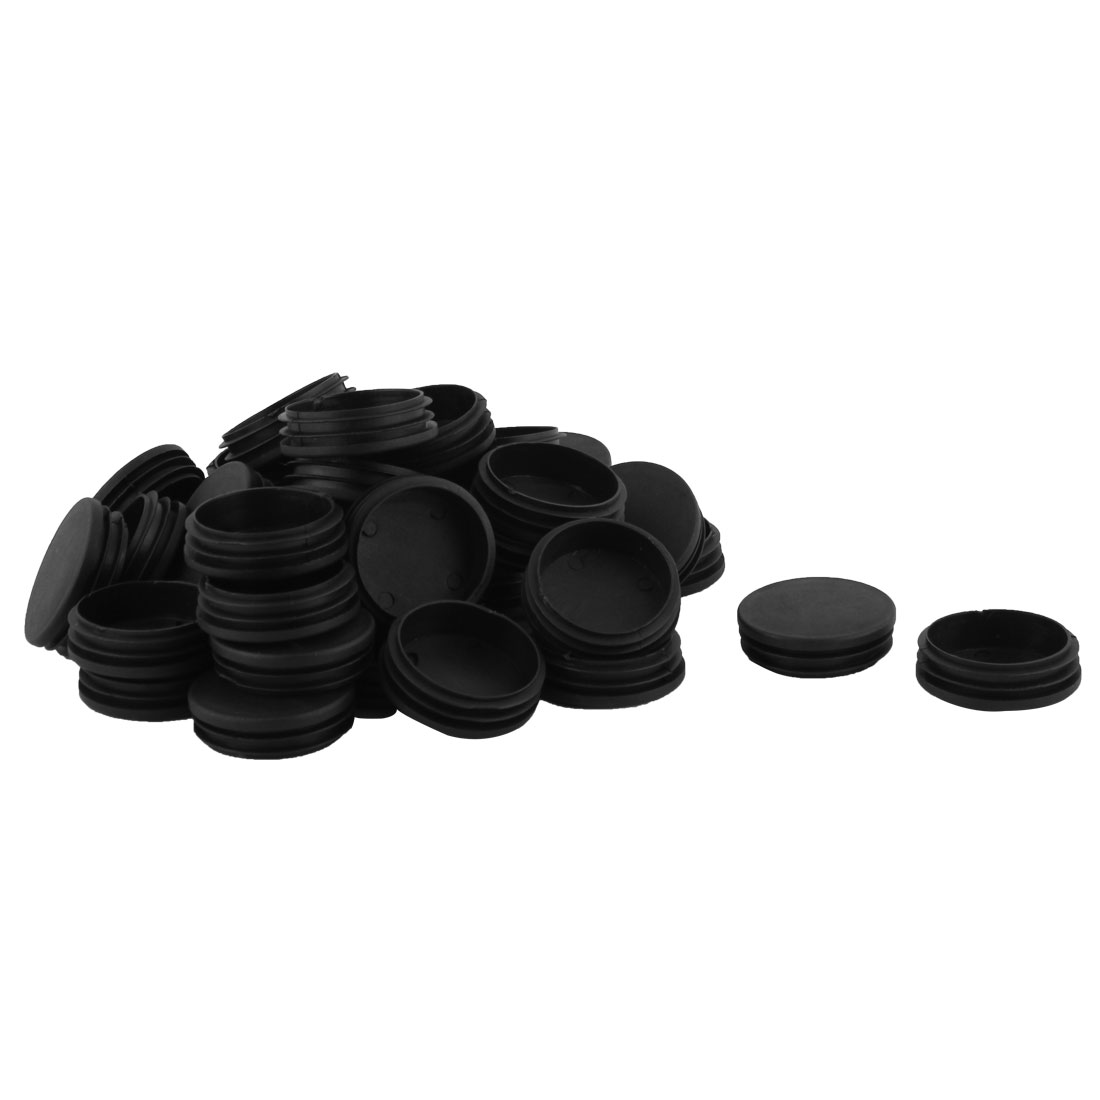 Home Office Plastic Round Shaped Table Desk Chair Legs Tube Insert Black 40 Pcs